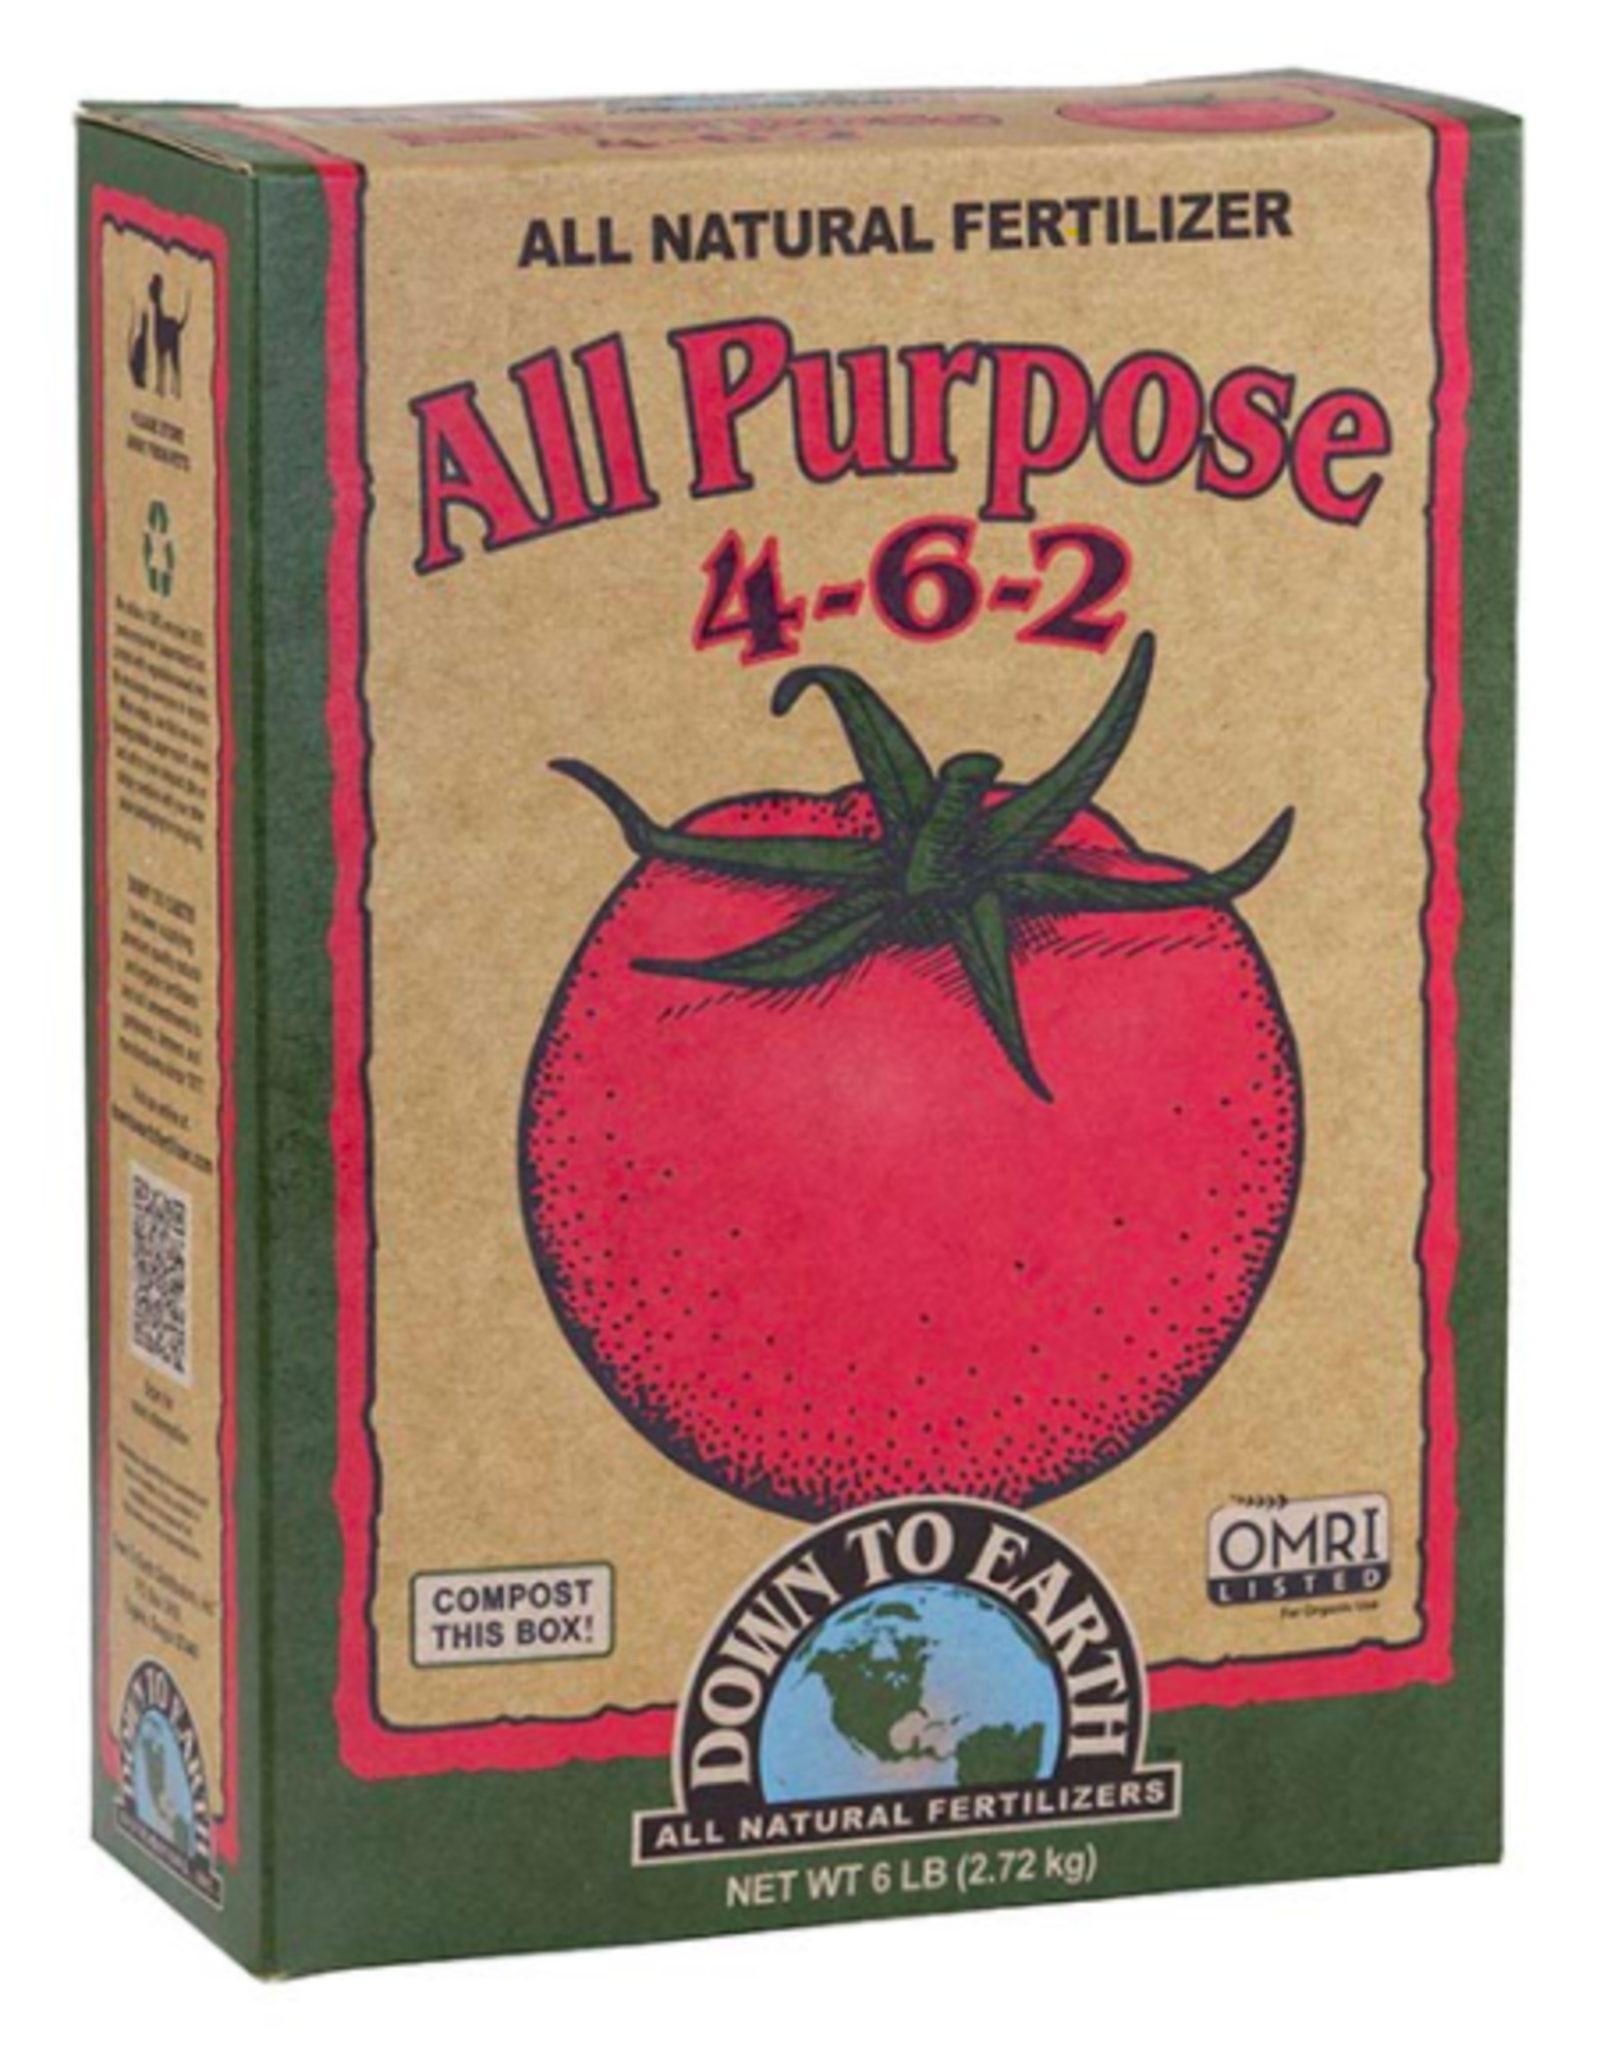 All Purpose Fertilizer 4-6-2